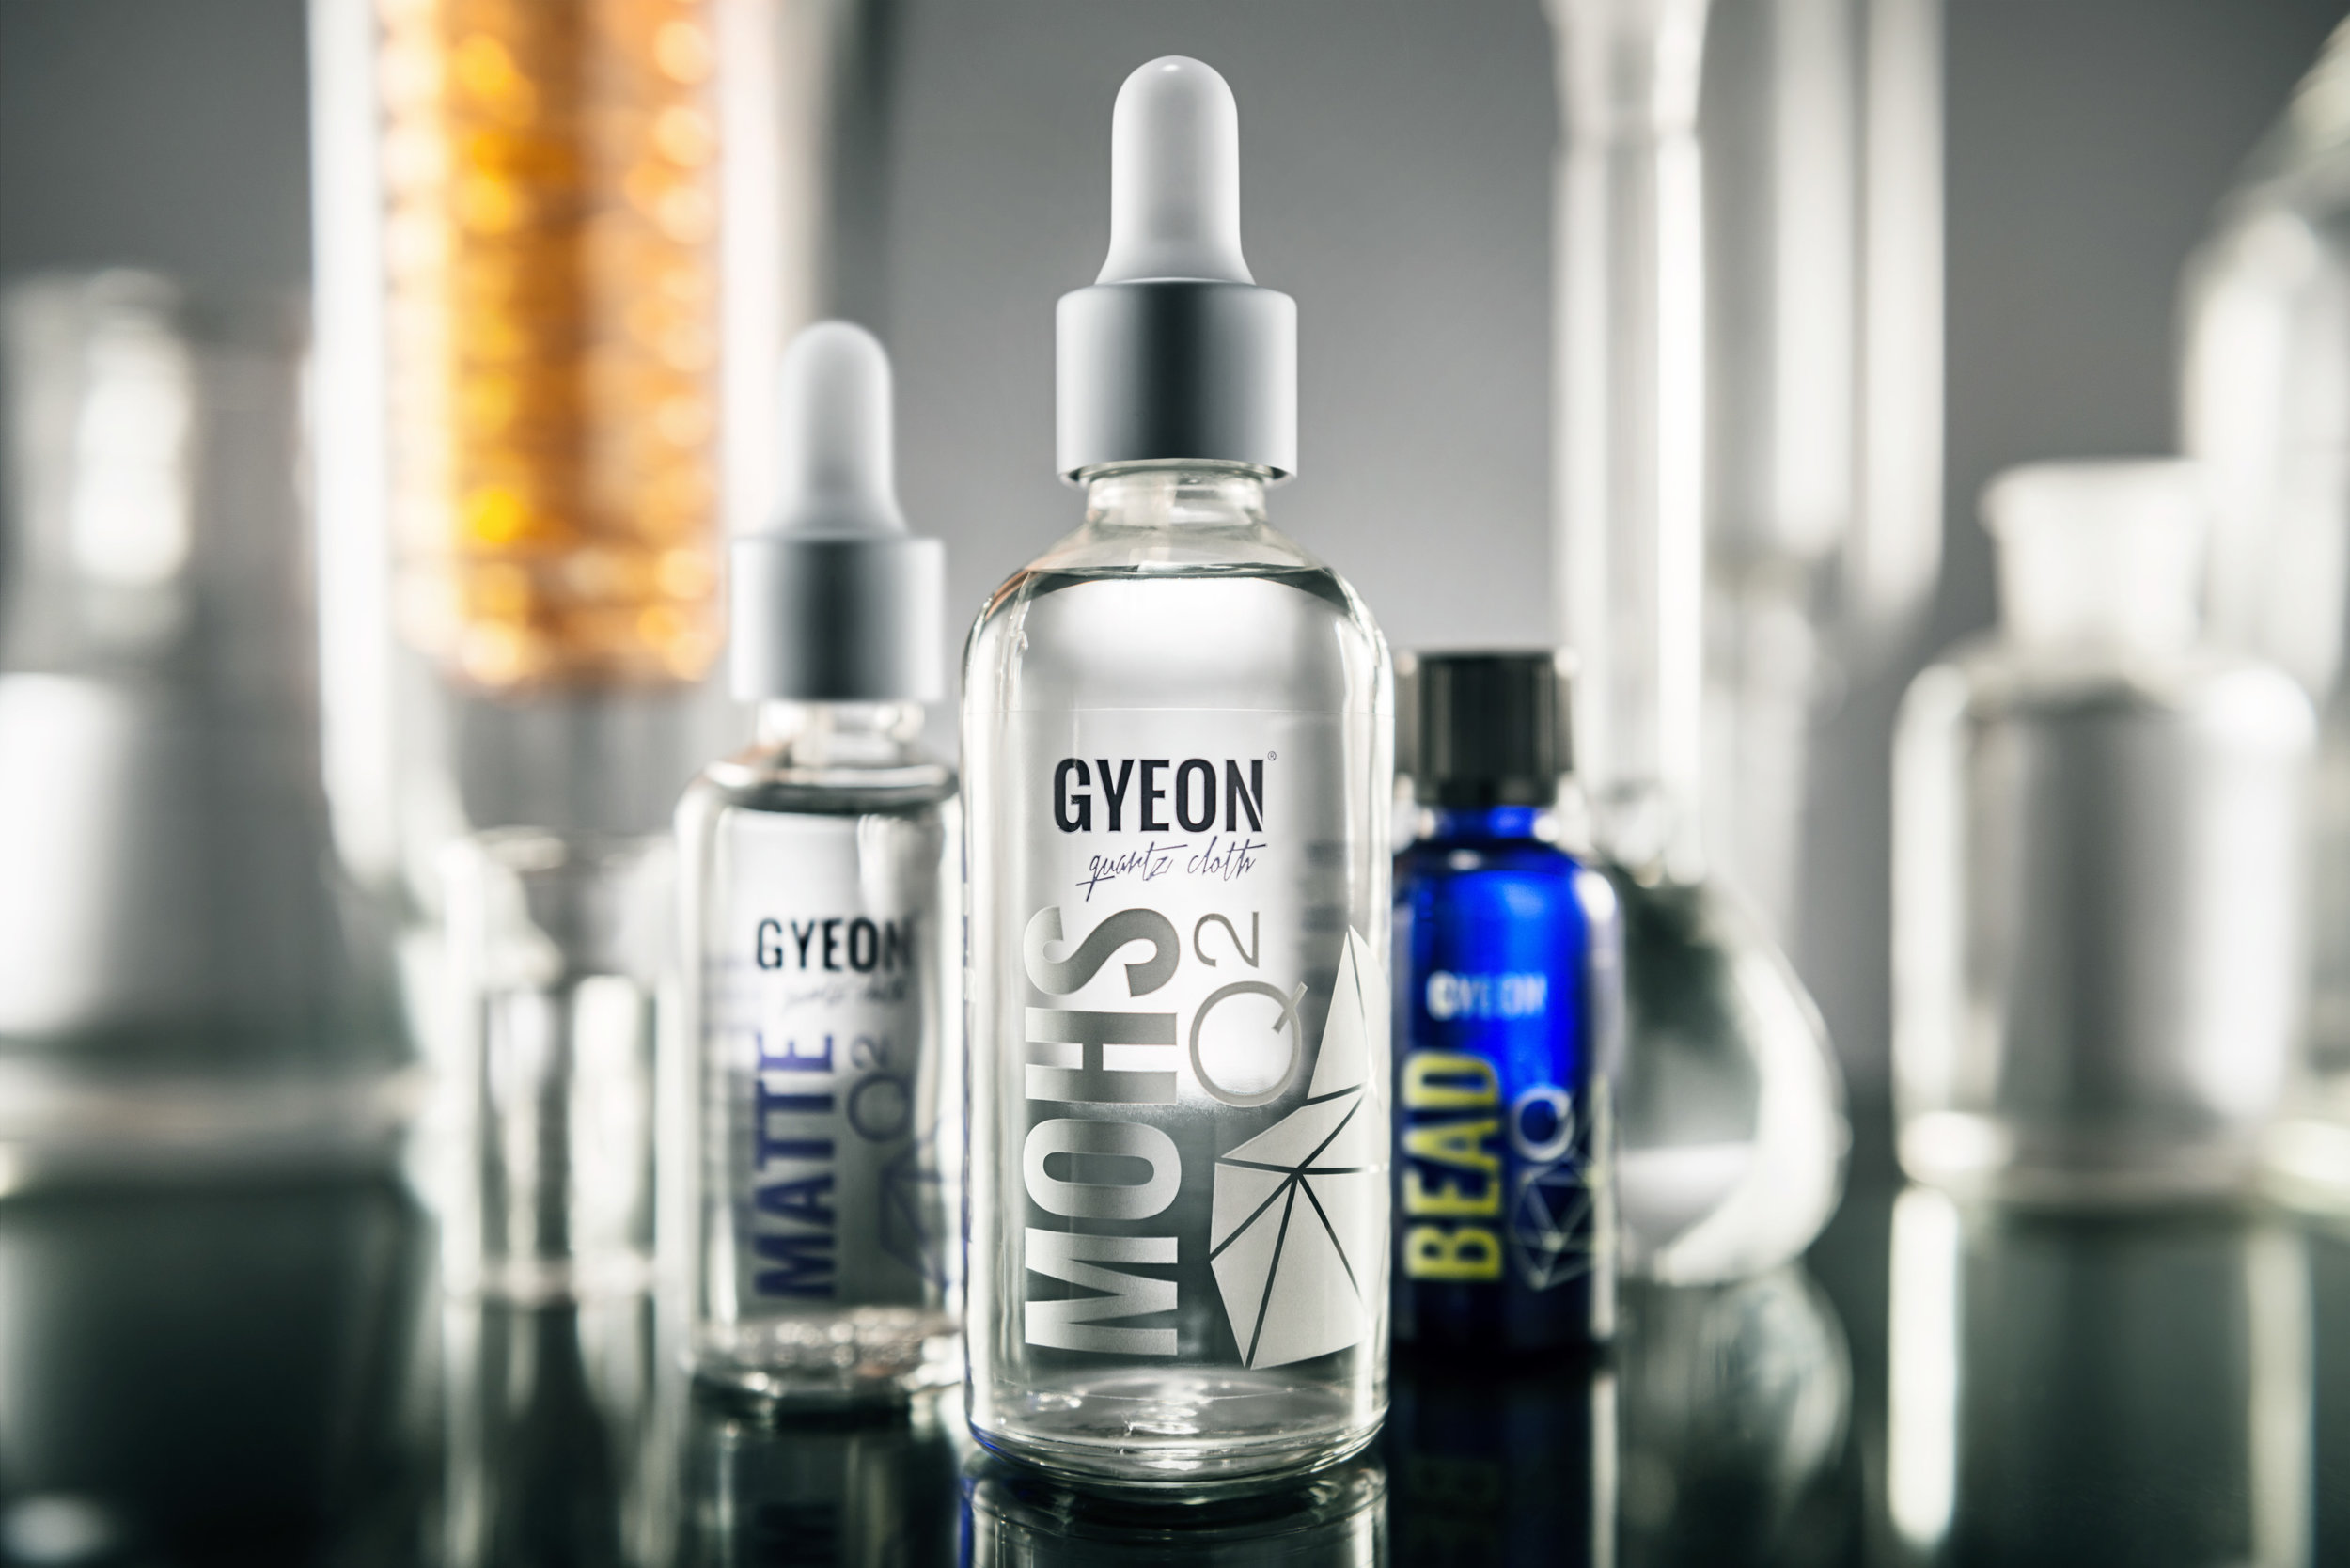 GYEON packshot 06.jpg